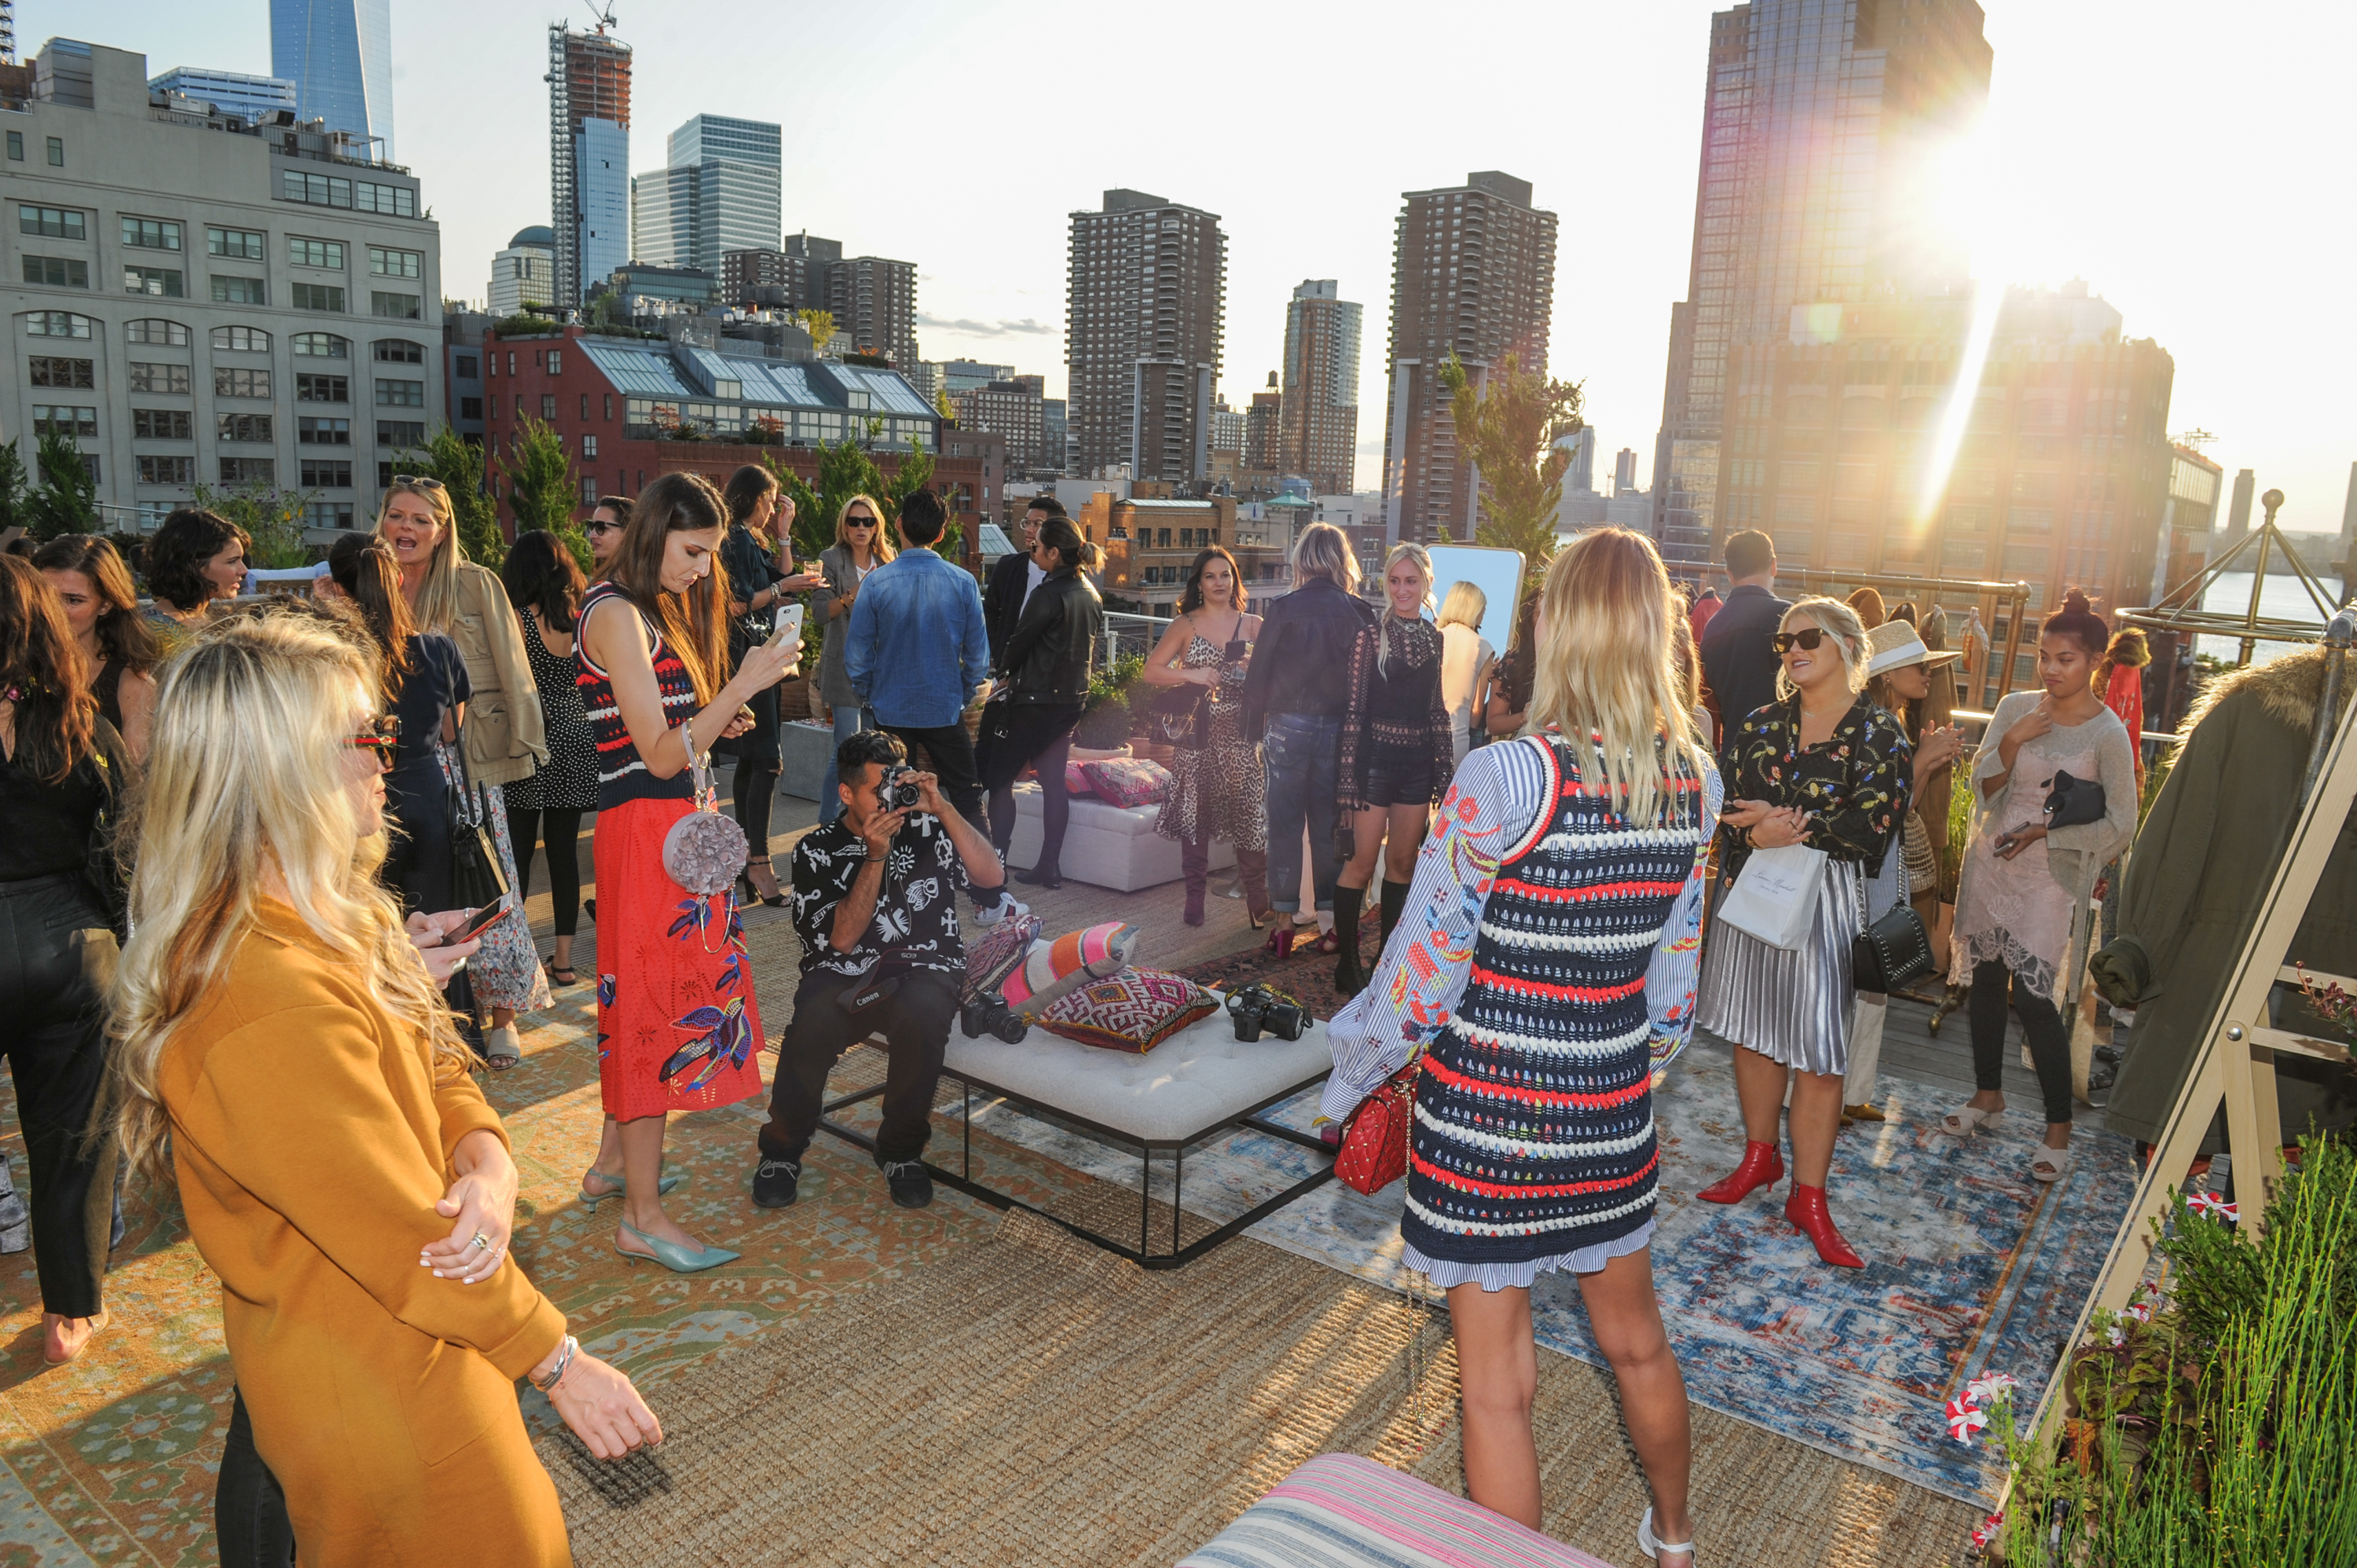 Vogue x Free People NYFW Rooftop Party #FPCOATCHECK